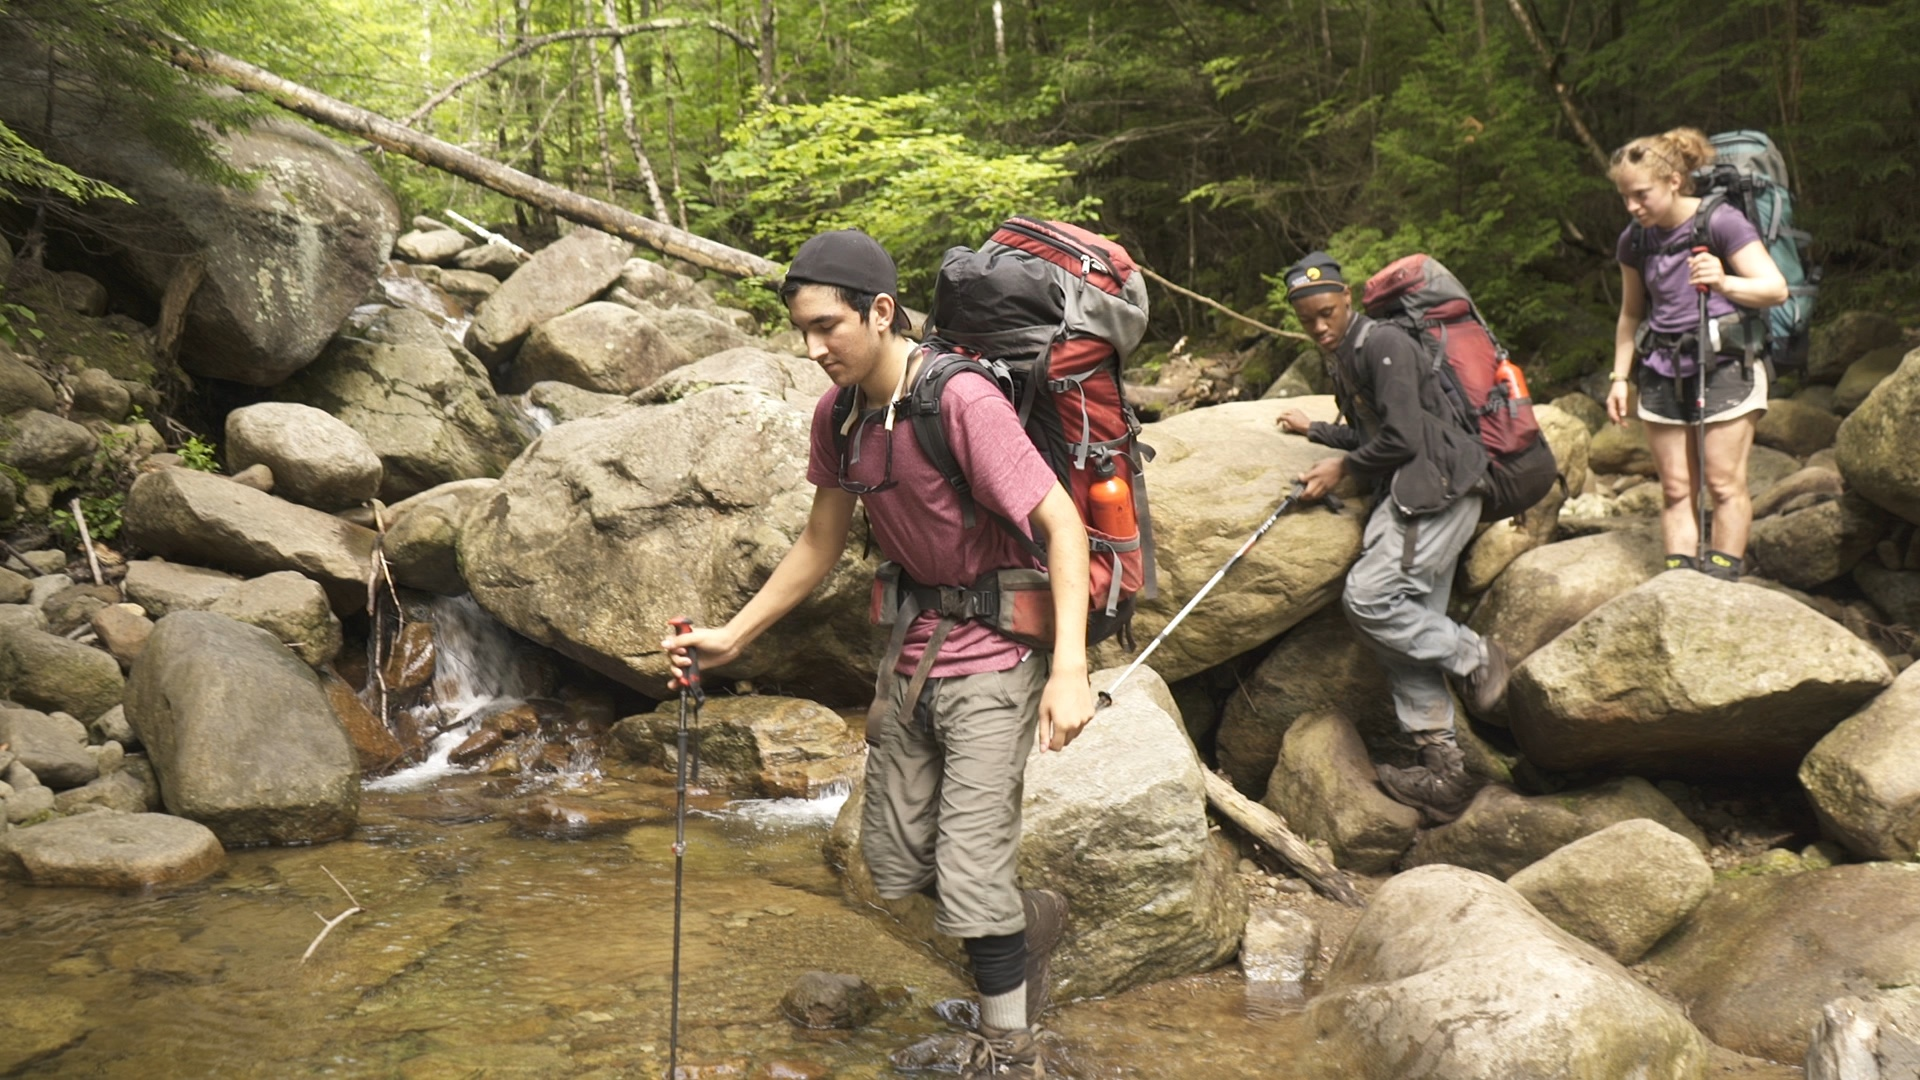 Service expedition in the Adirondacks